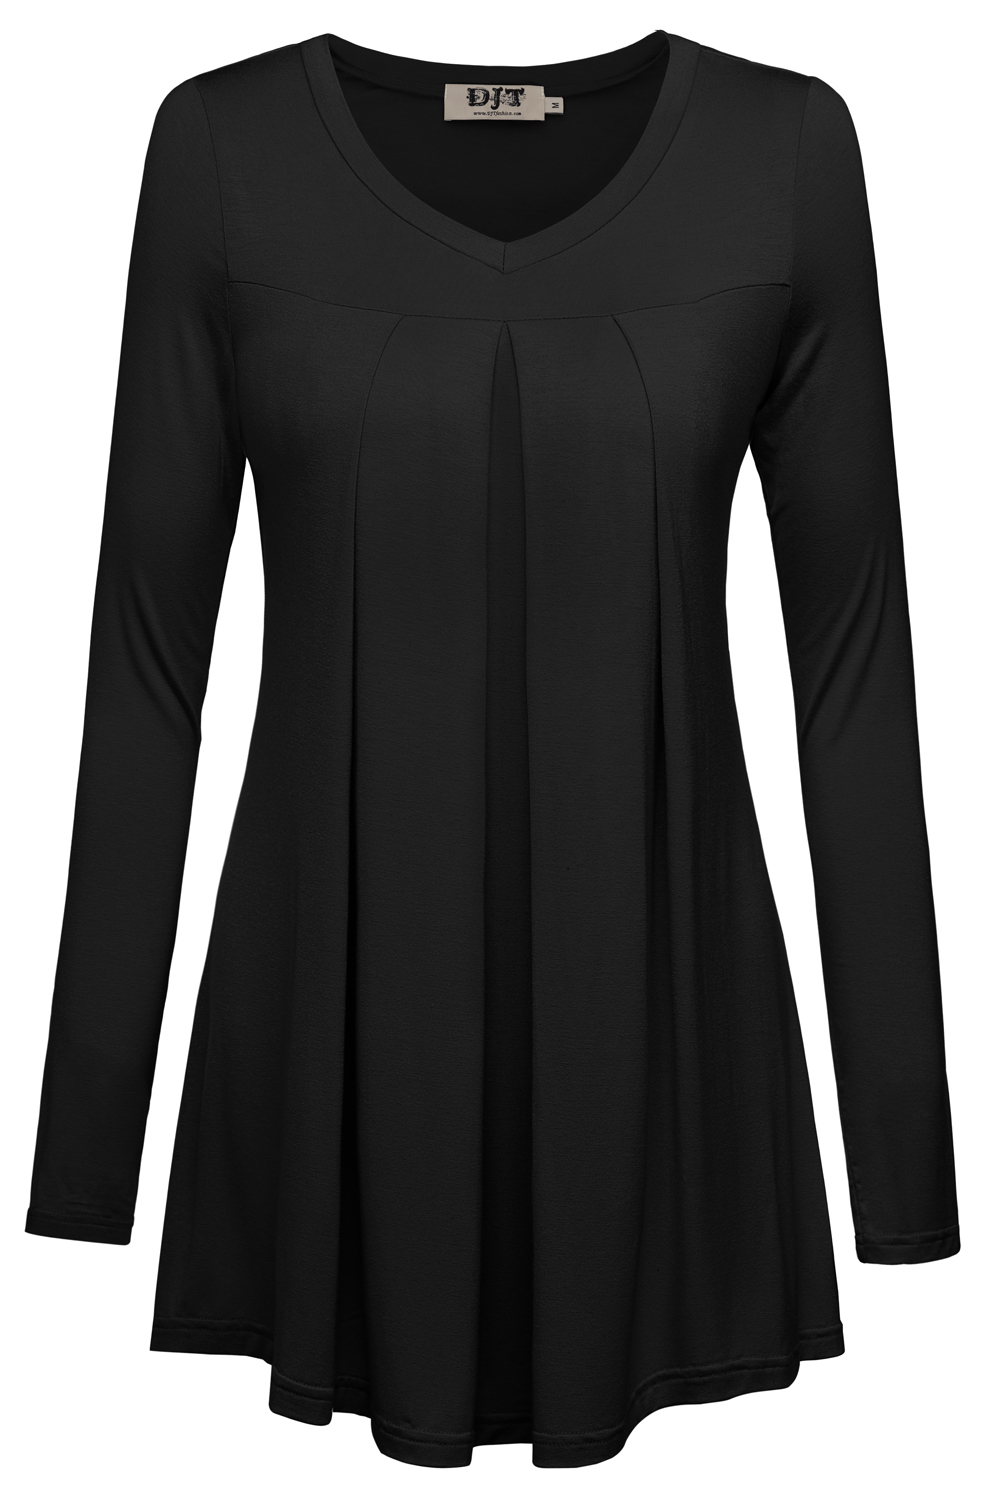 DJT Women's V Neck Long Sleeve Pleated Front Blouse Tunic Top Large Black